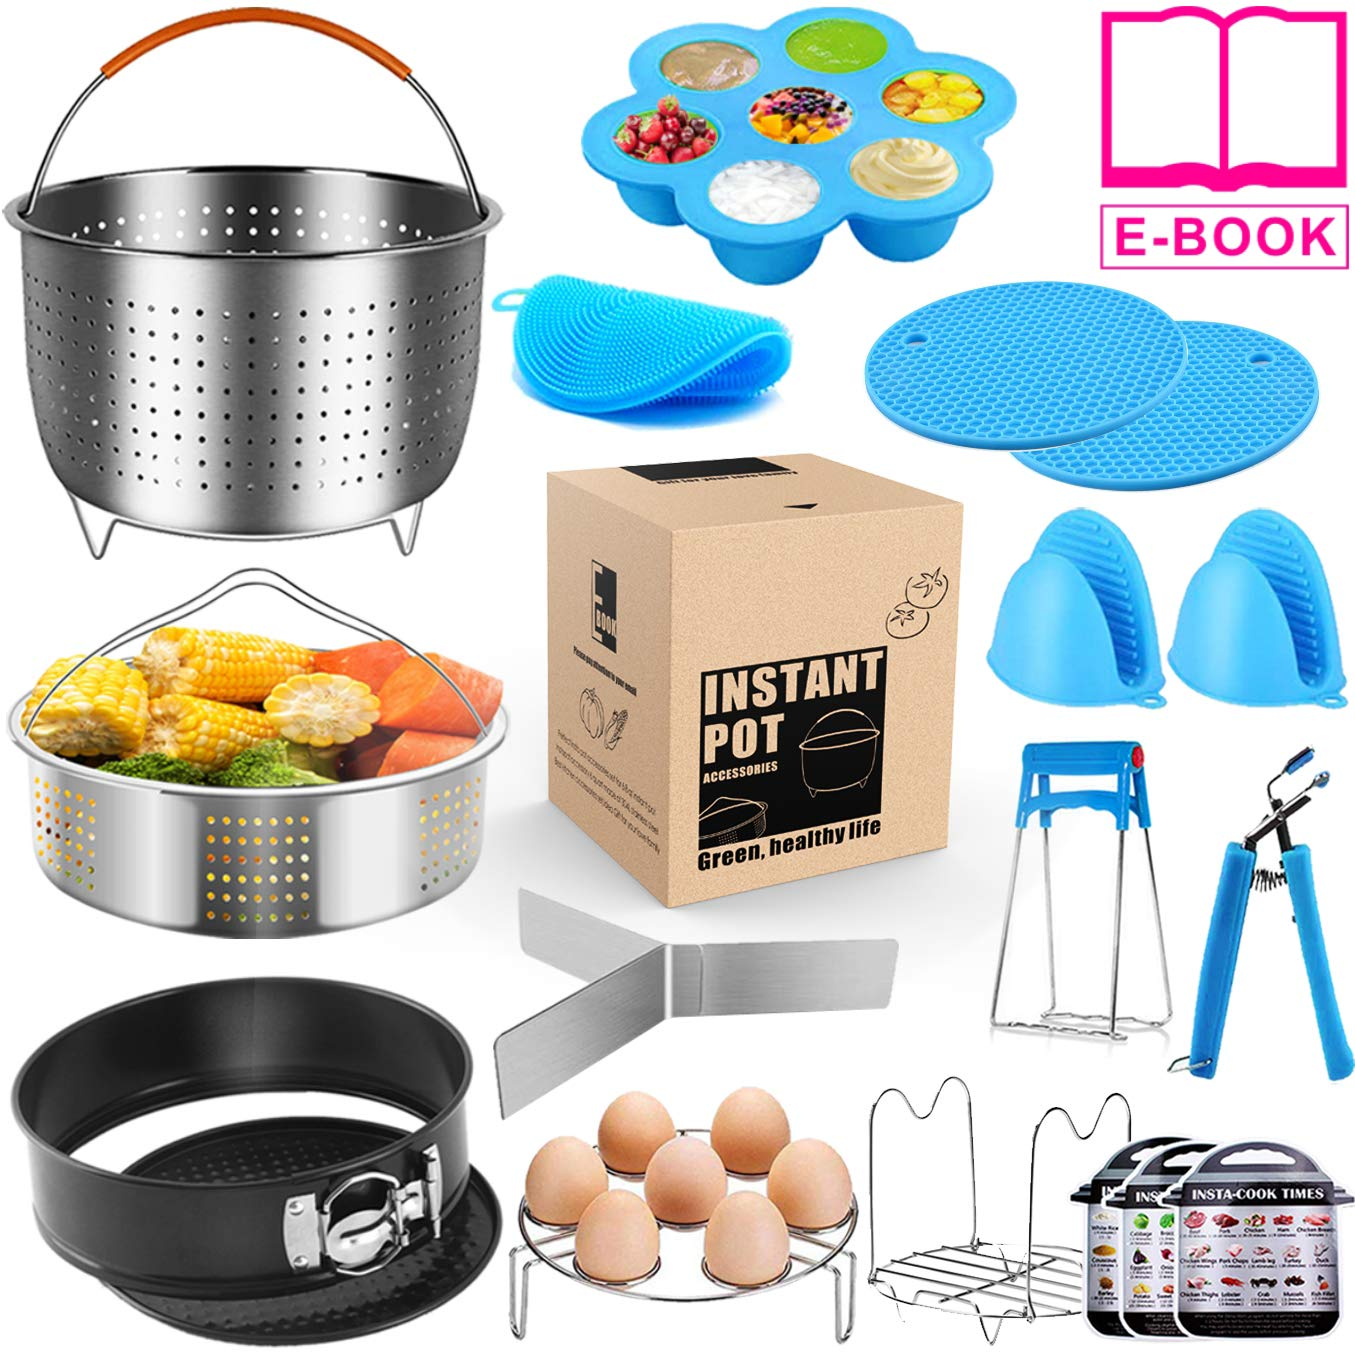 Instant Pot Accessories Set - Instapot Accessories Compatible with 6 qt 8 Quart Insta Pot w/Steamer Baskets,Springform Pan,Egg Bites Mold/Separator/Rack,Kitchen Tongs,Cheat Sheet Magnets - 17 PCS